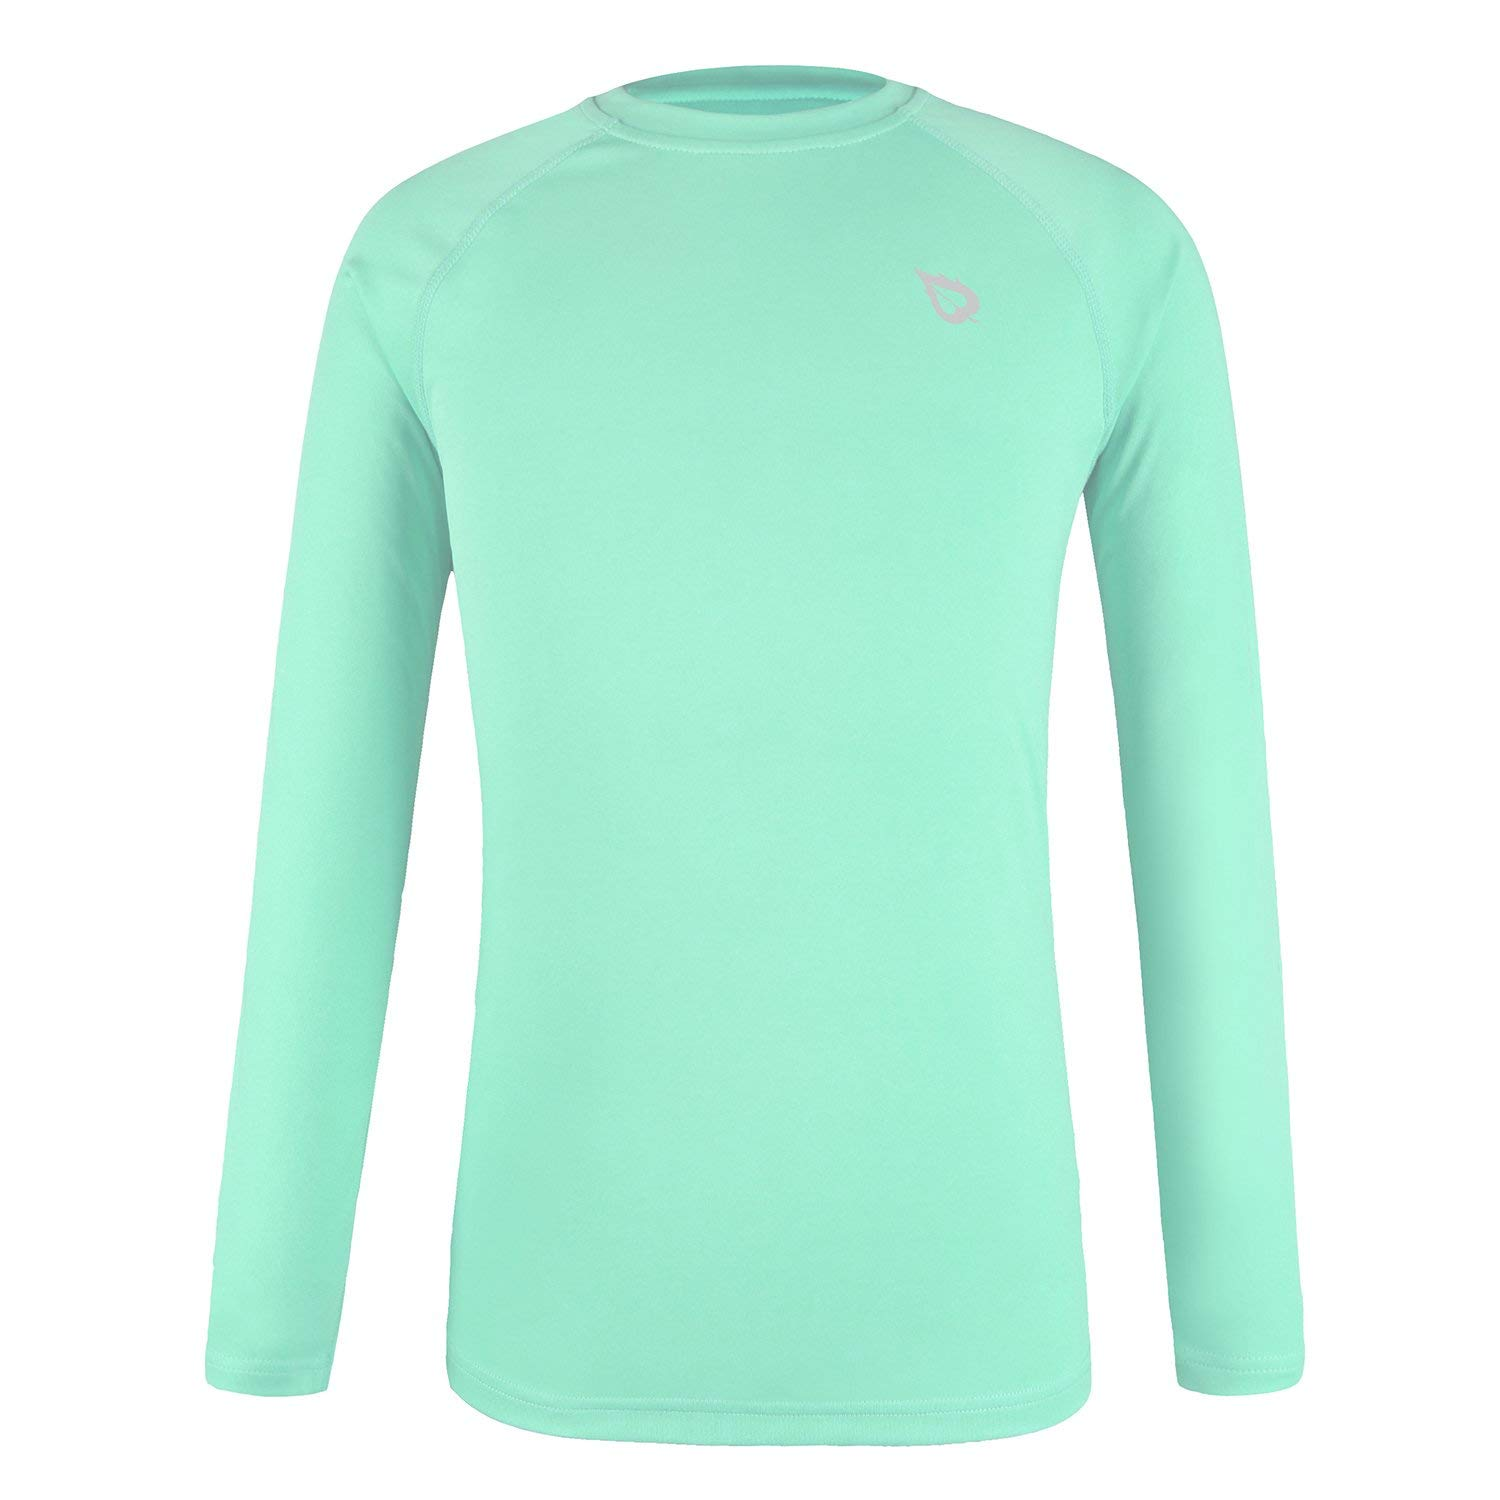 Baleaf Youth UPF 50+ Sun Protection Basic Skins Long Sleeve T-Shirt Light Green Size L